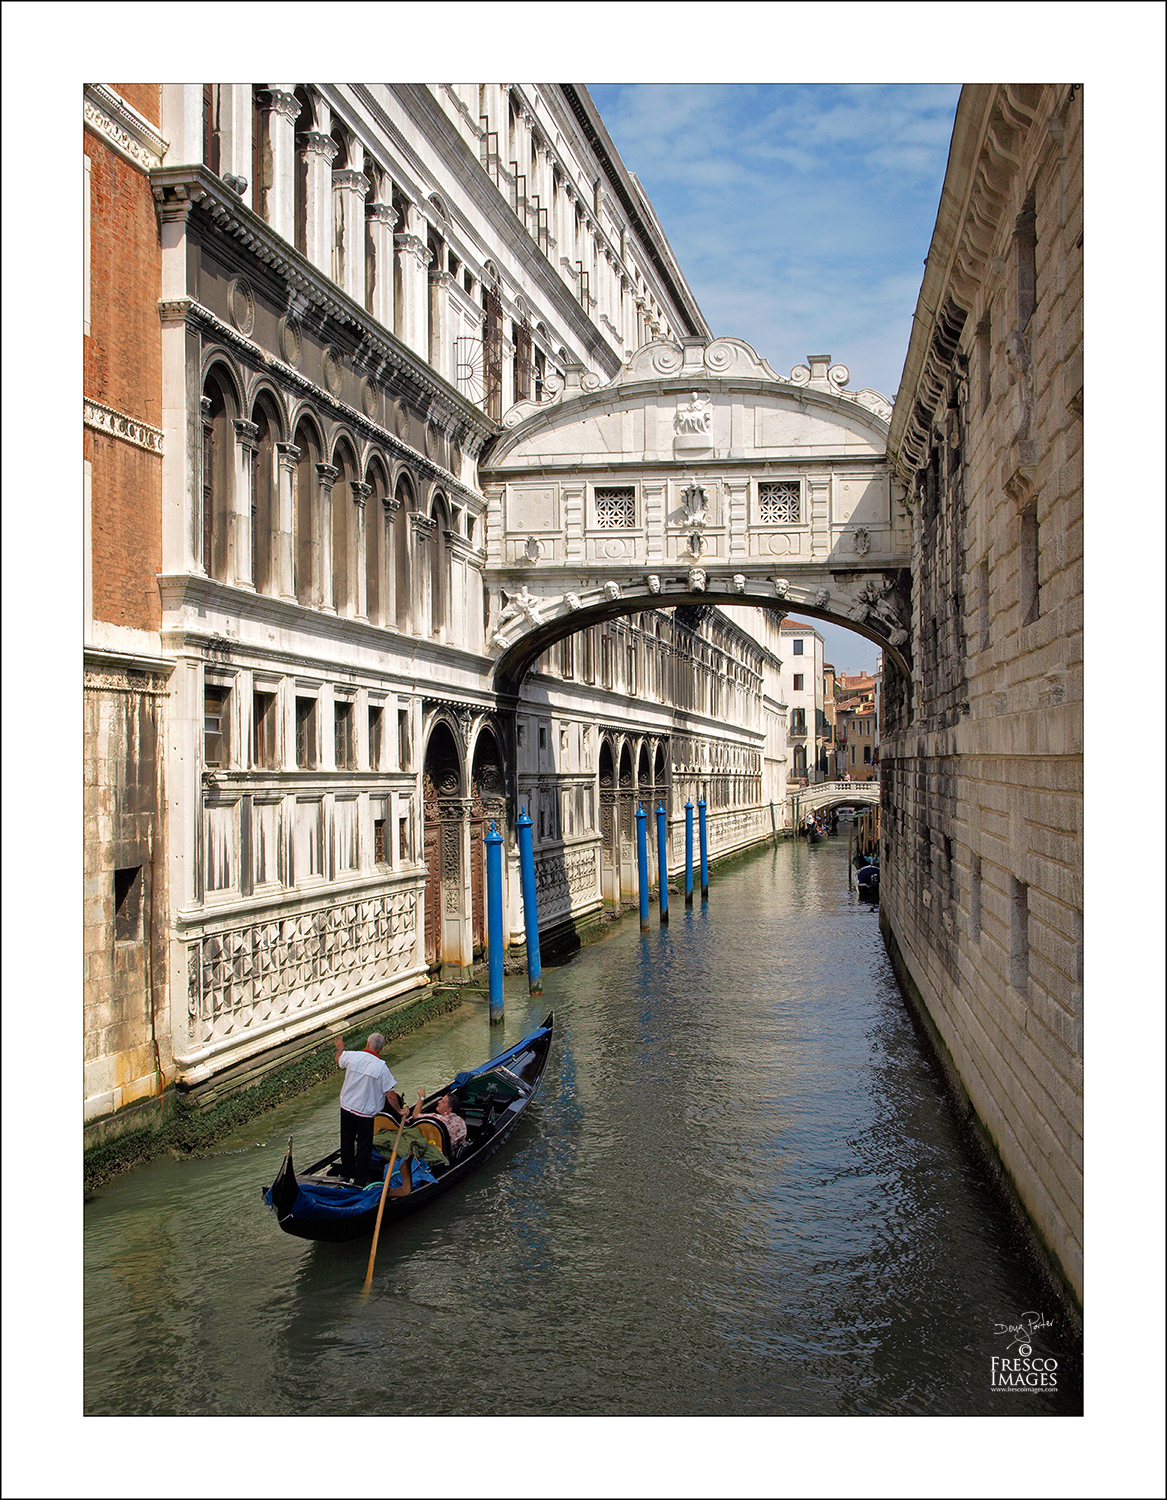 'The Bridge of Sighs'